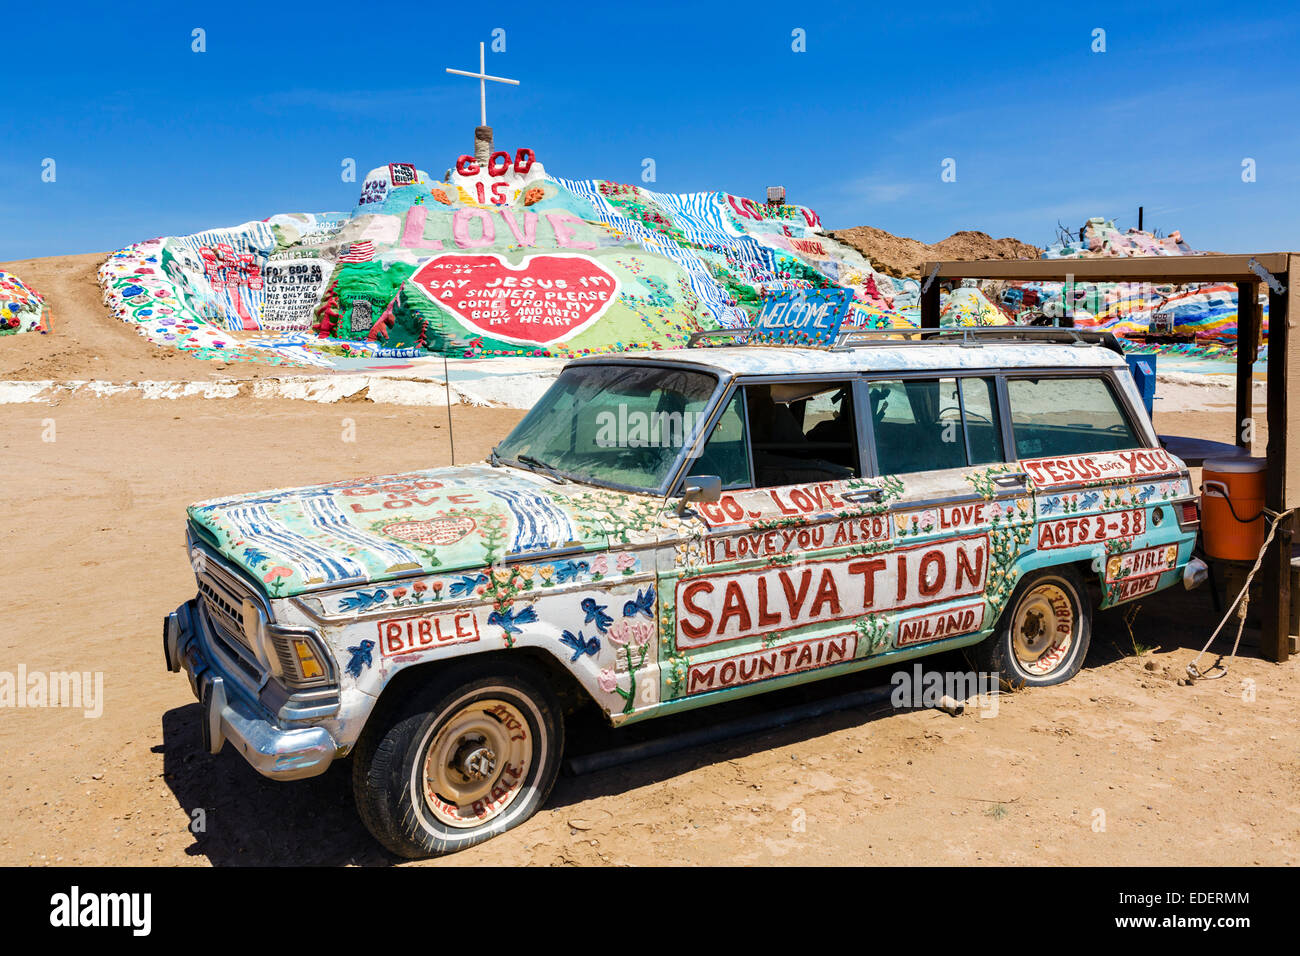 Painted car at Salvation Mountain, Leonard Knight's large scale piece of religious folk art, Niland, California, - Stock Image